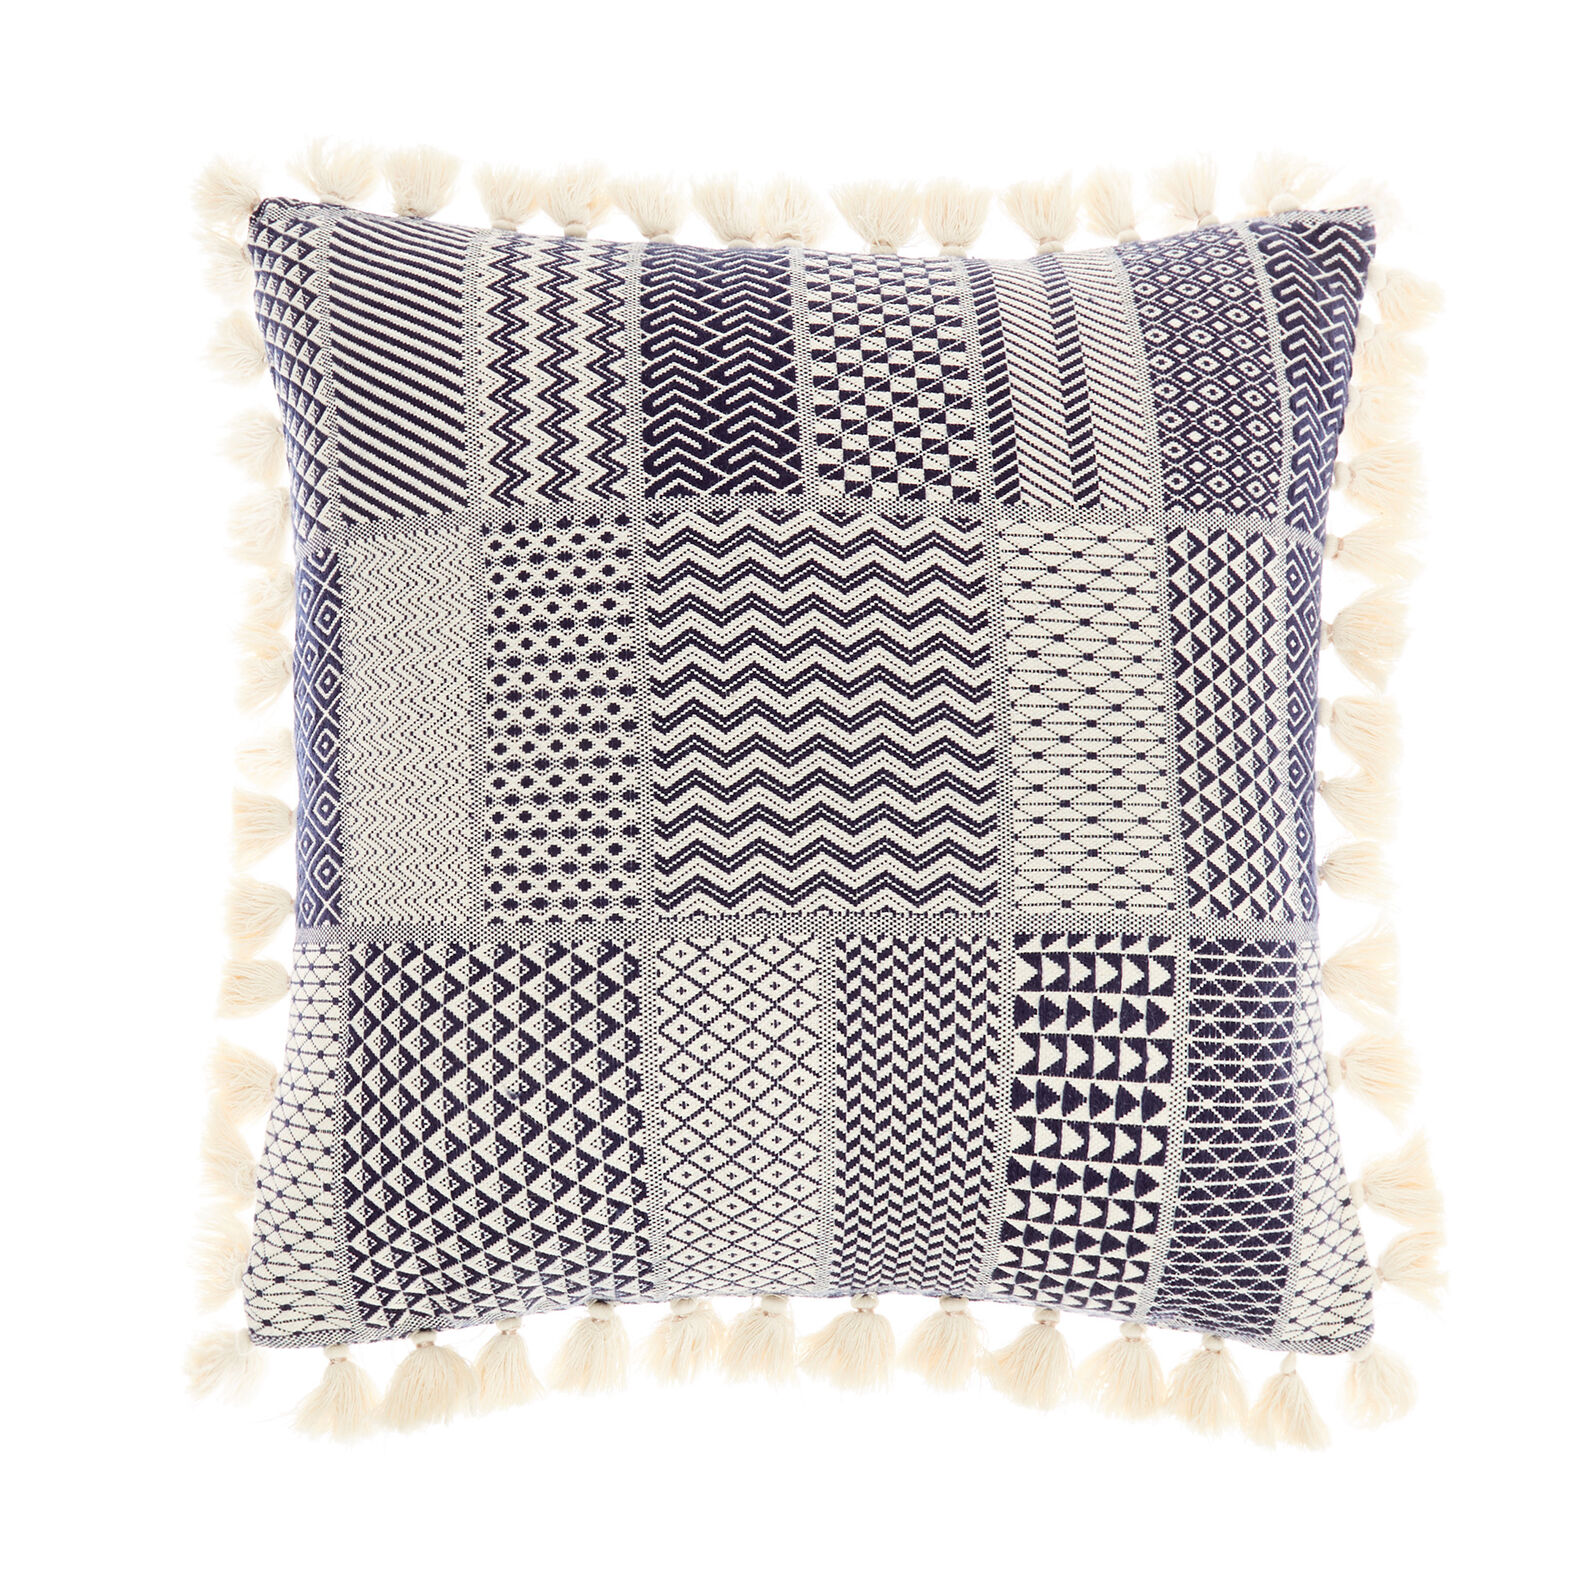 Geometric patchwork cushion